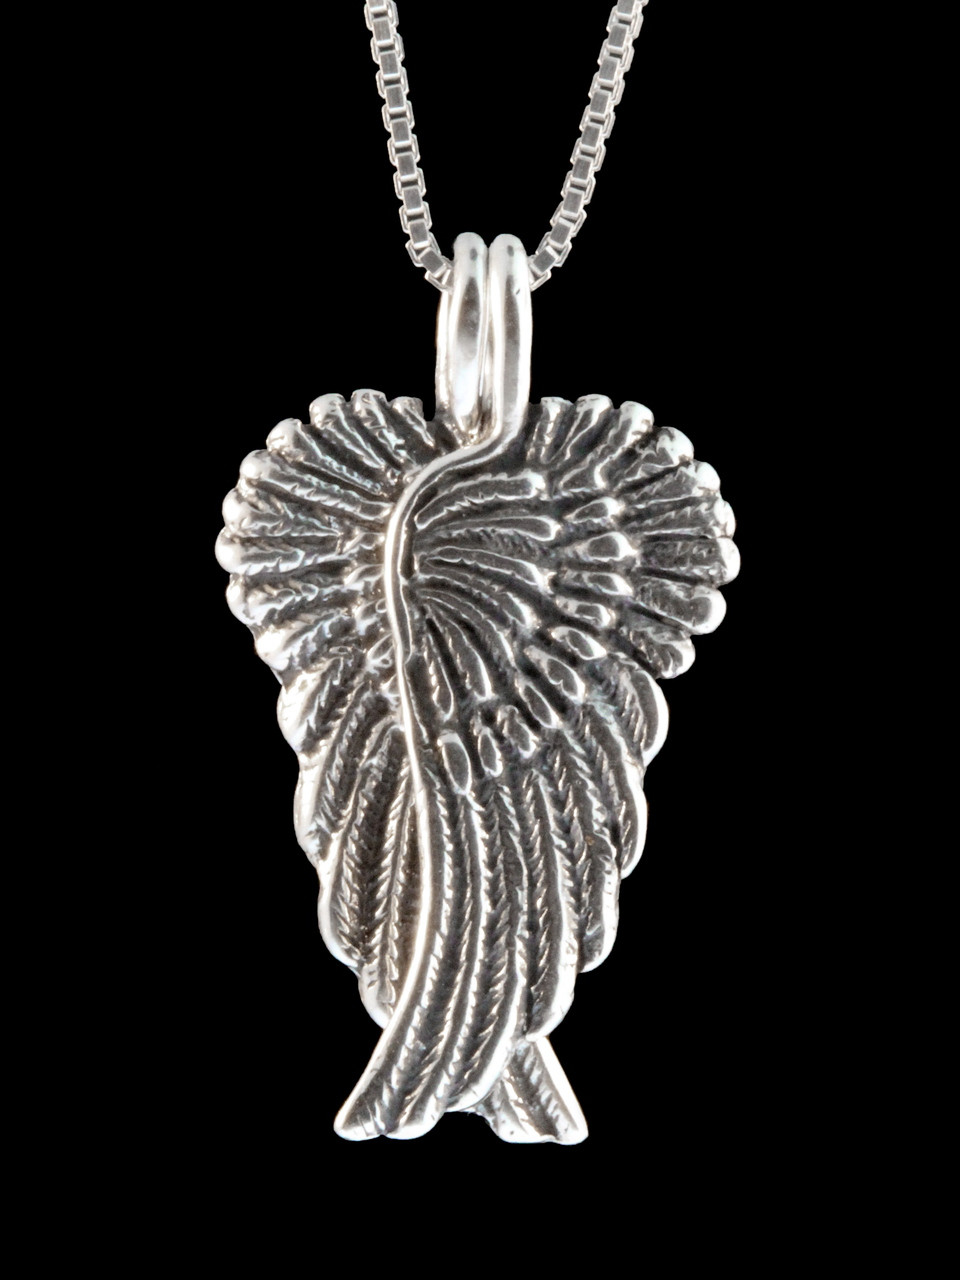 be angel pendant jewellery product gemmed wing